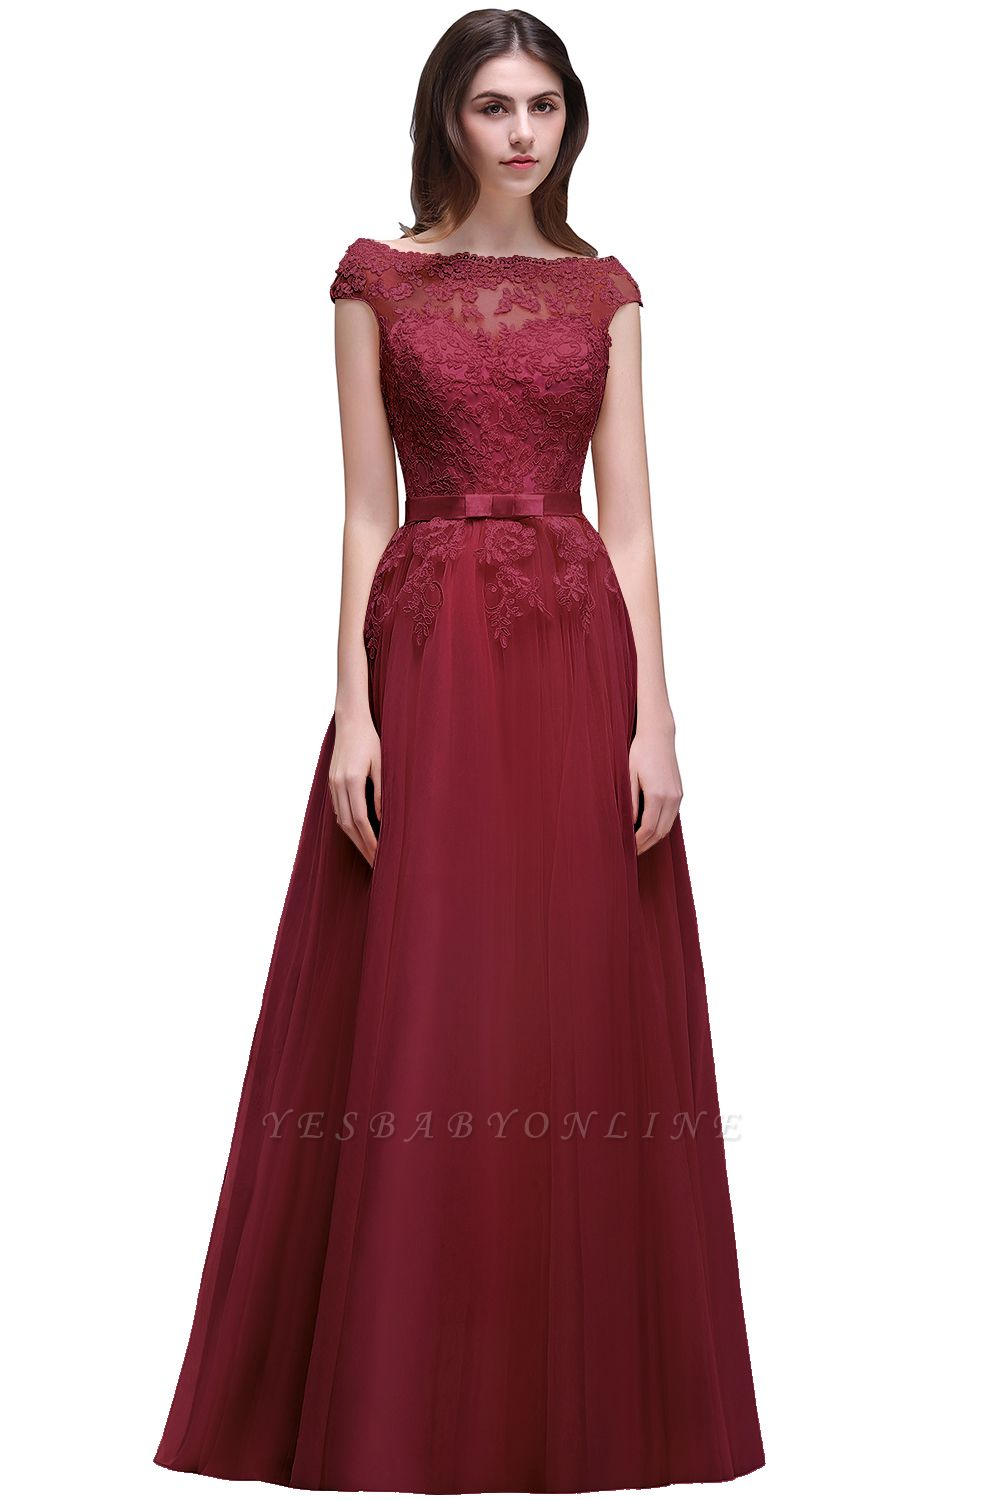 Champagne Evening  Prom Off-the-shoulder Floor-Length with-Belt Lace-Appliques Party Dress